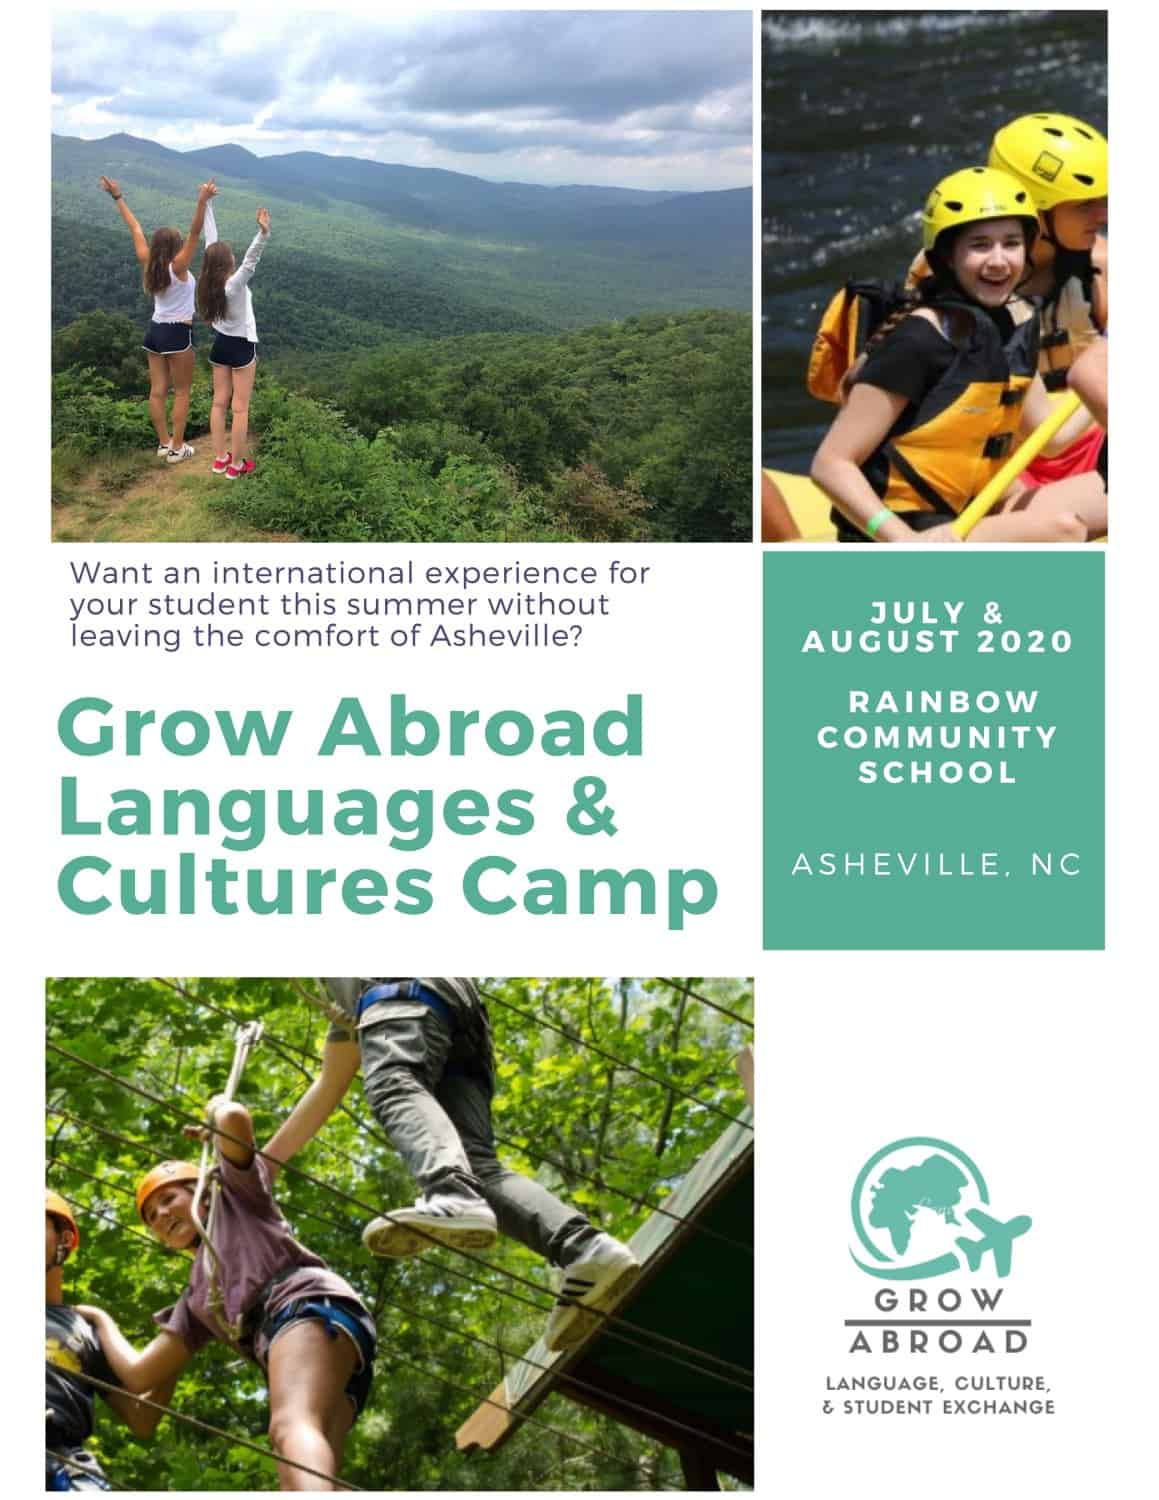 languages and cultures camp